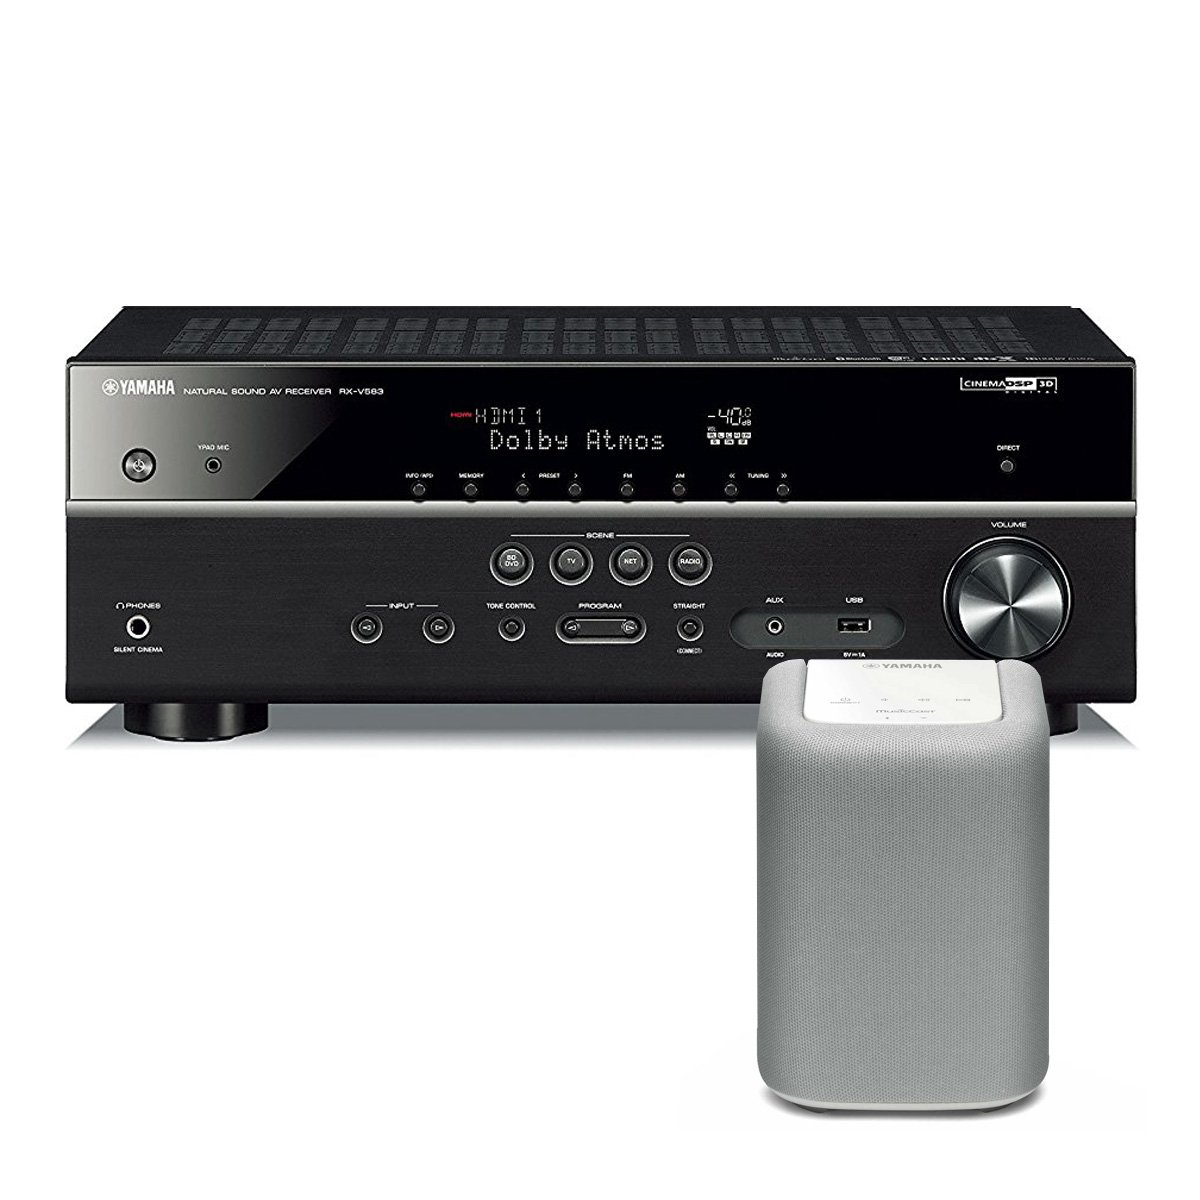 Yamaha RX-V583 7.2 Channel AV Network Receiver with Dolby Atmos and DTS:X Surround Sound with WX-010 MusicCast Wireless Speaker (White)